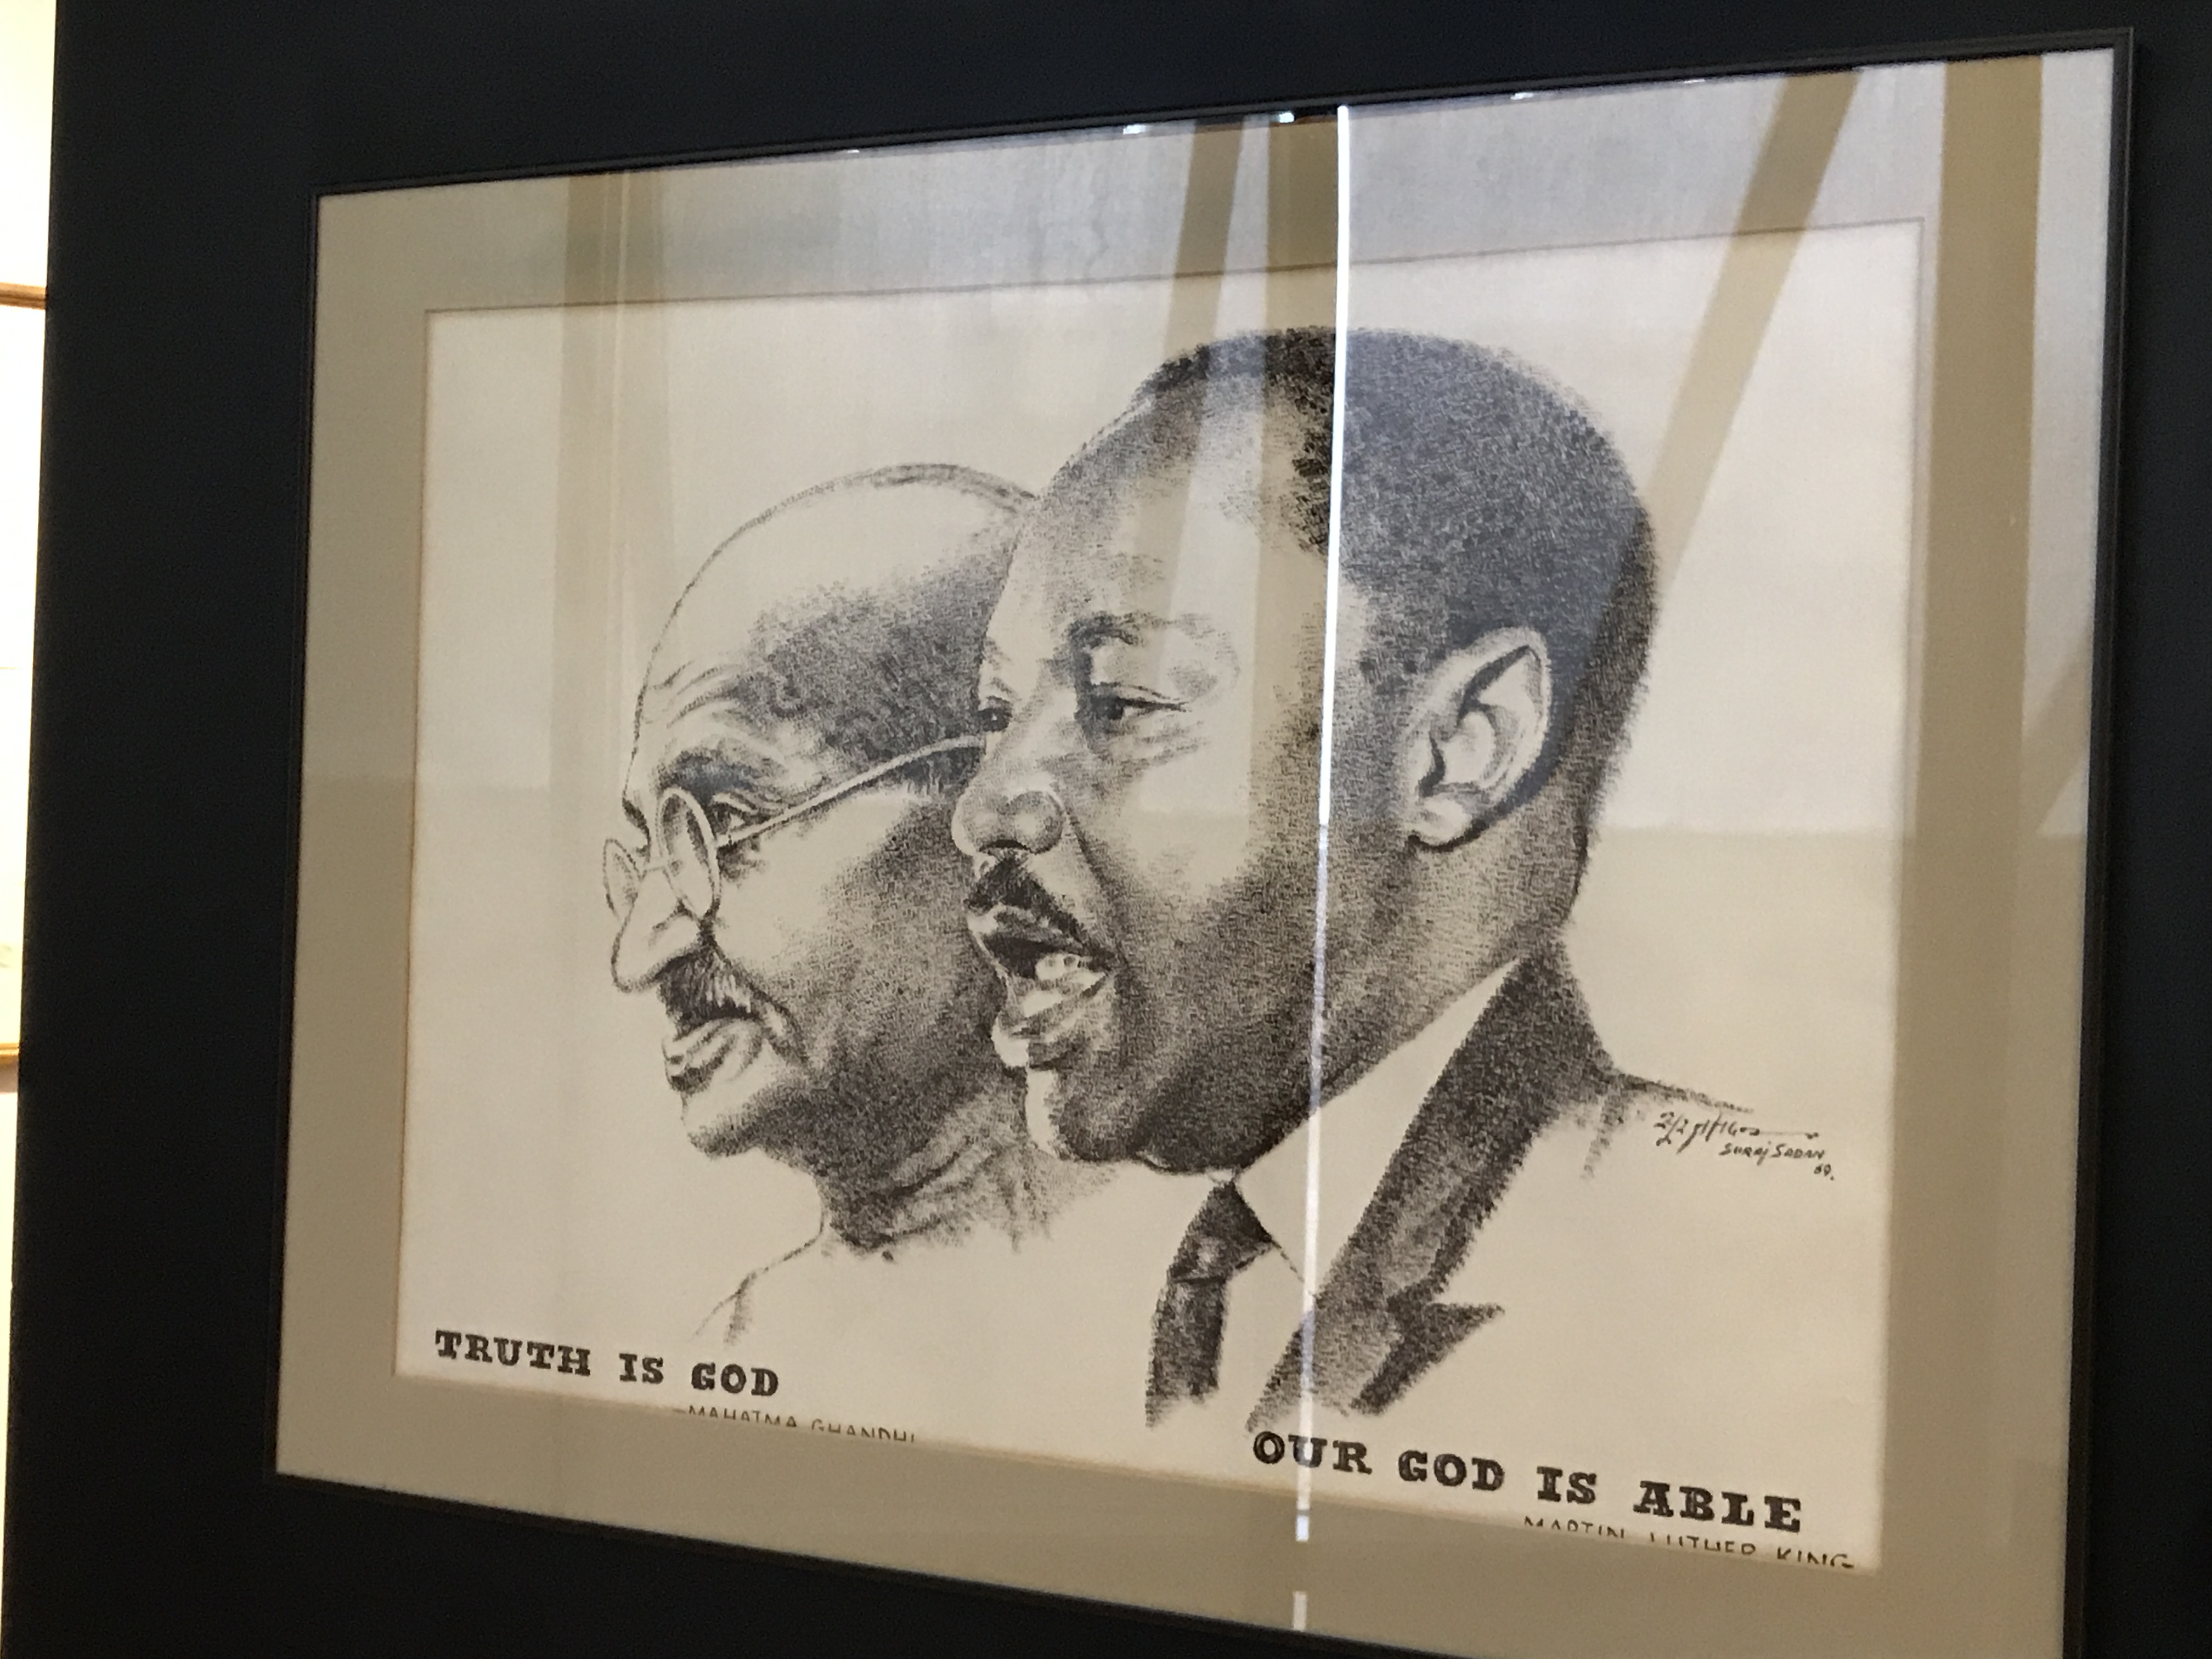 Gandhi and M. L. King at the King National Historical Landmark Atlanta (Jenn Abrams)